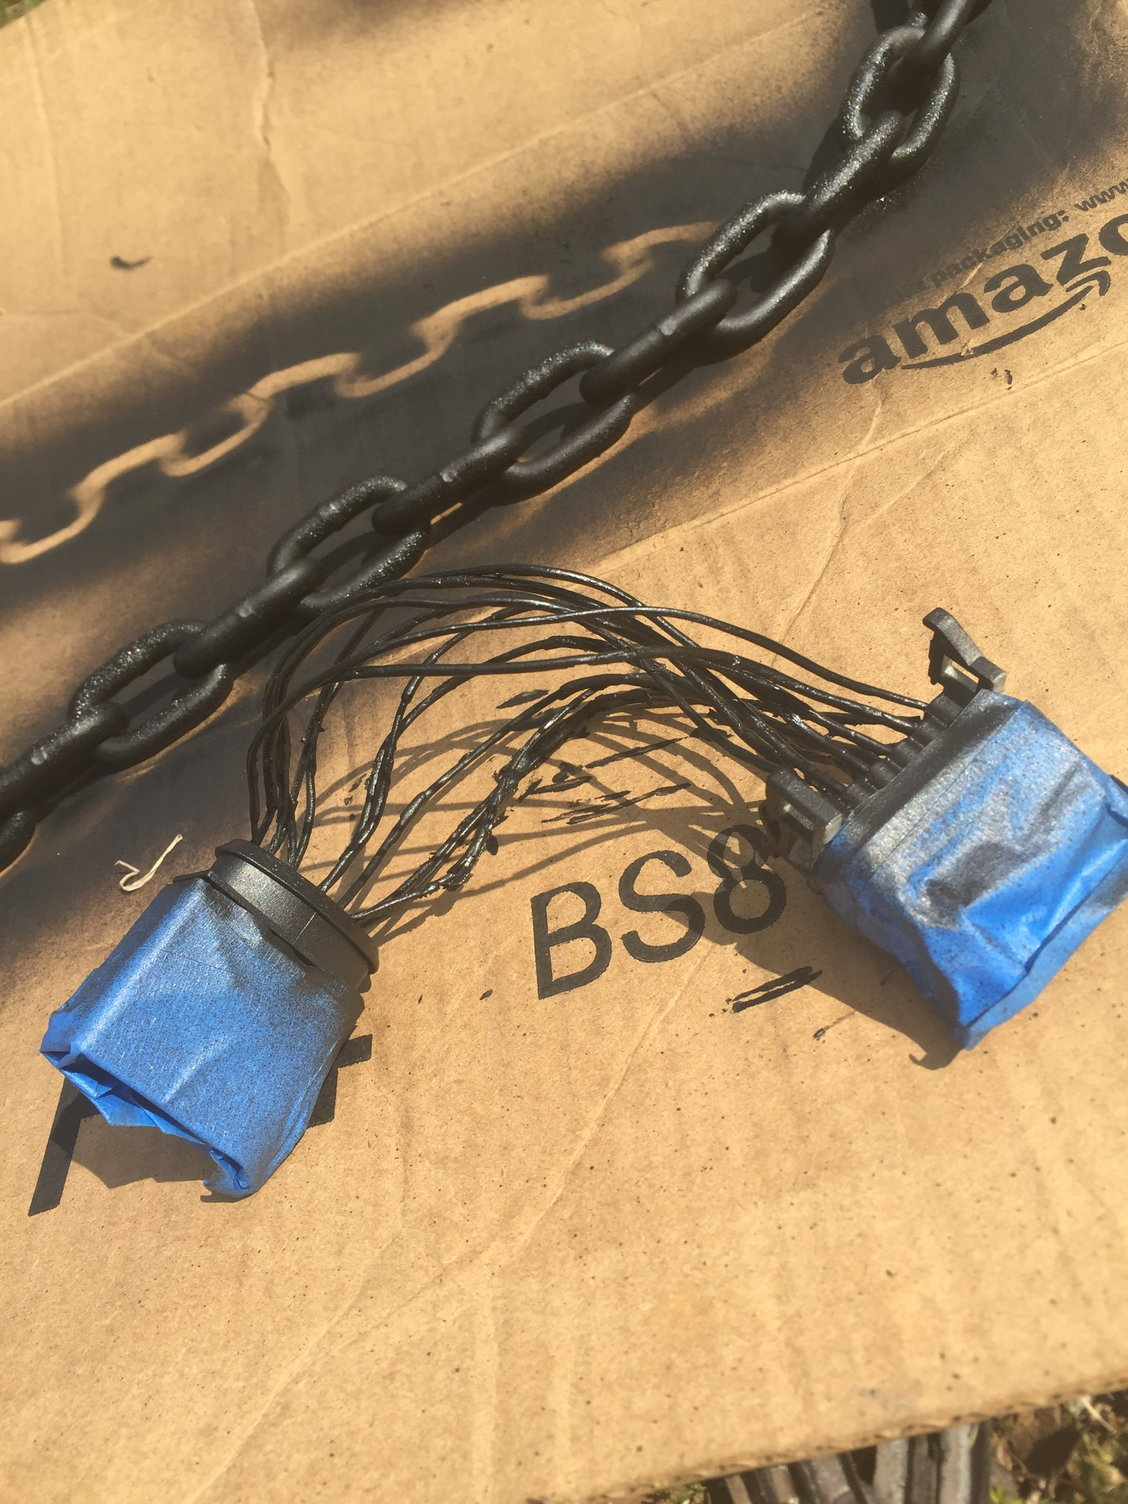 Brittle Wiring Insulation Rennlist Porsche Discussion Forums Cayenne Headlight Harness In Case Anyone Comes Across This I Used Black Spray Plastidip So Far Good